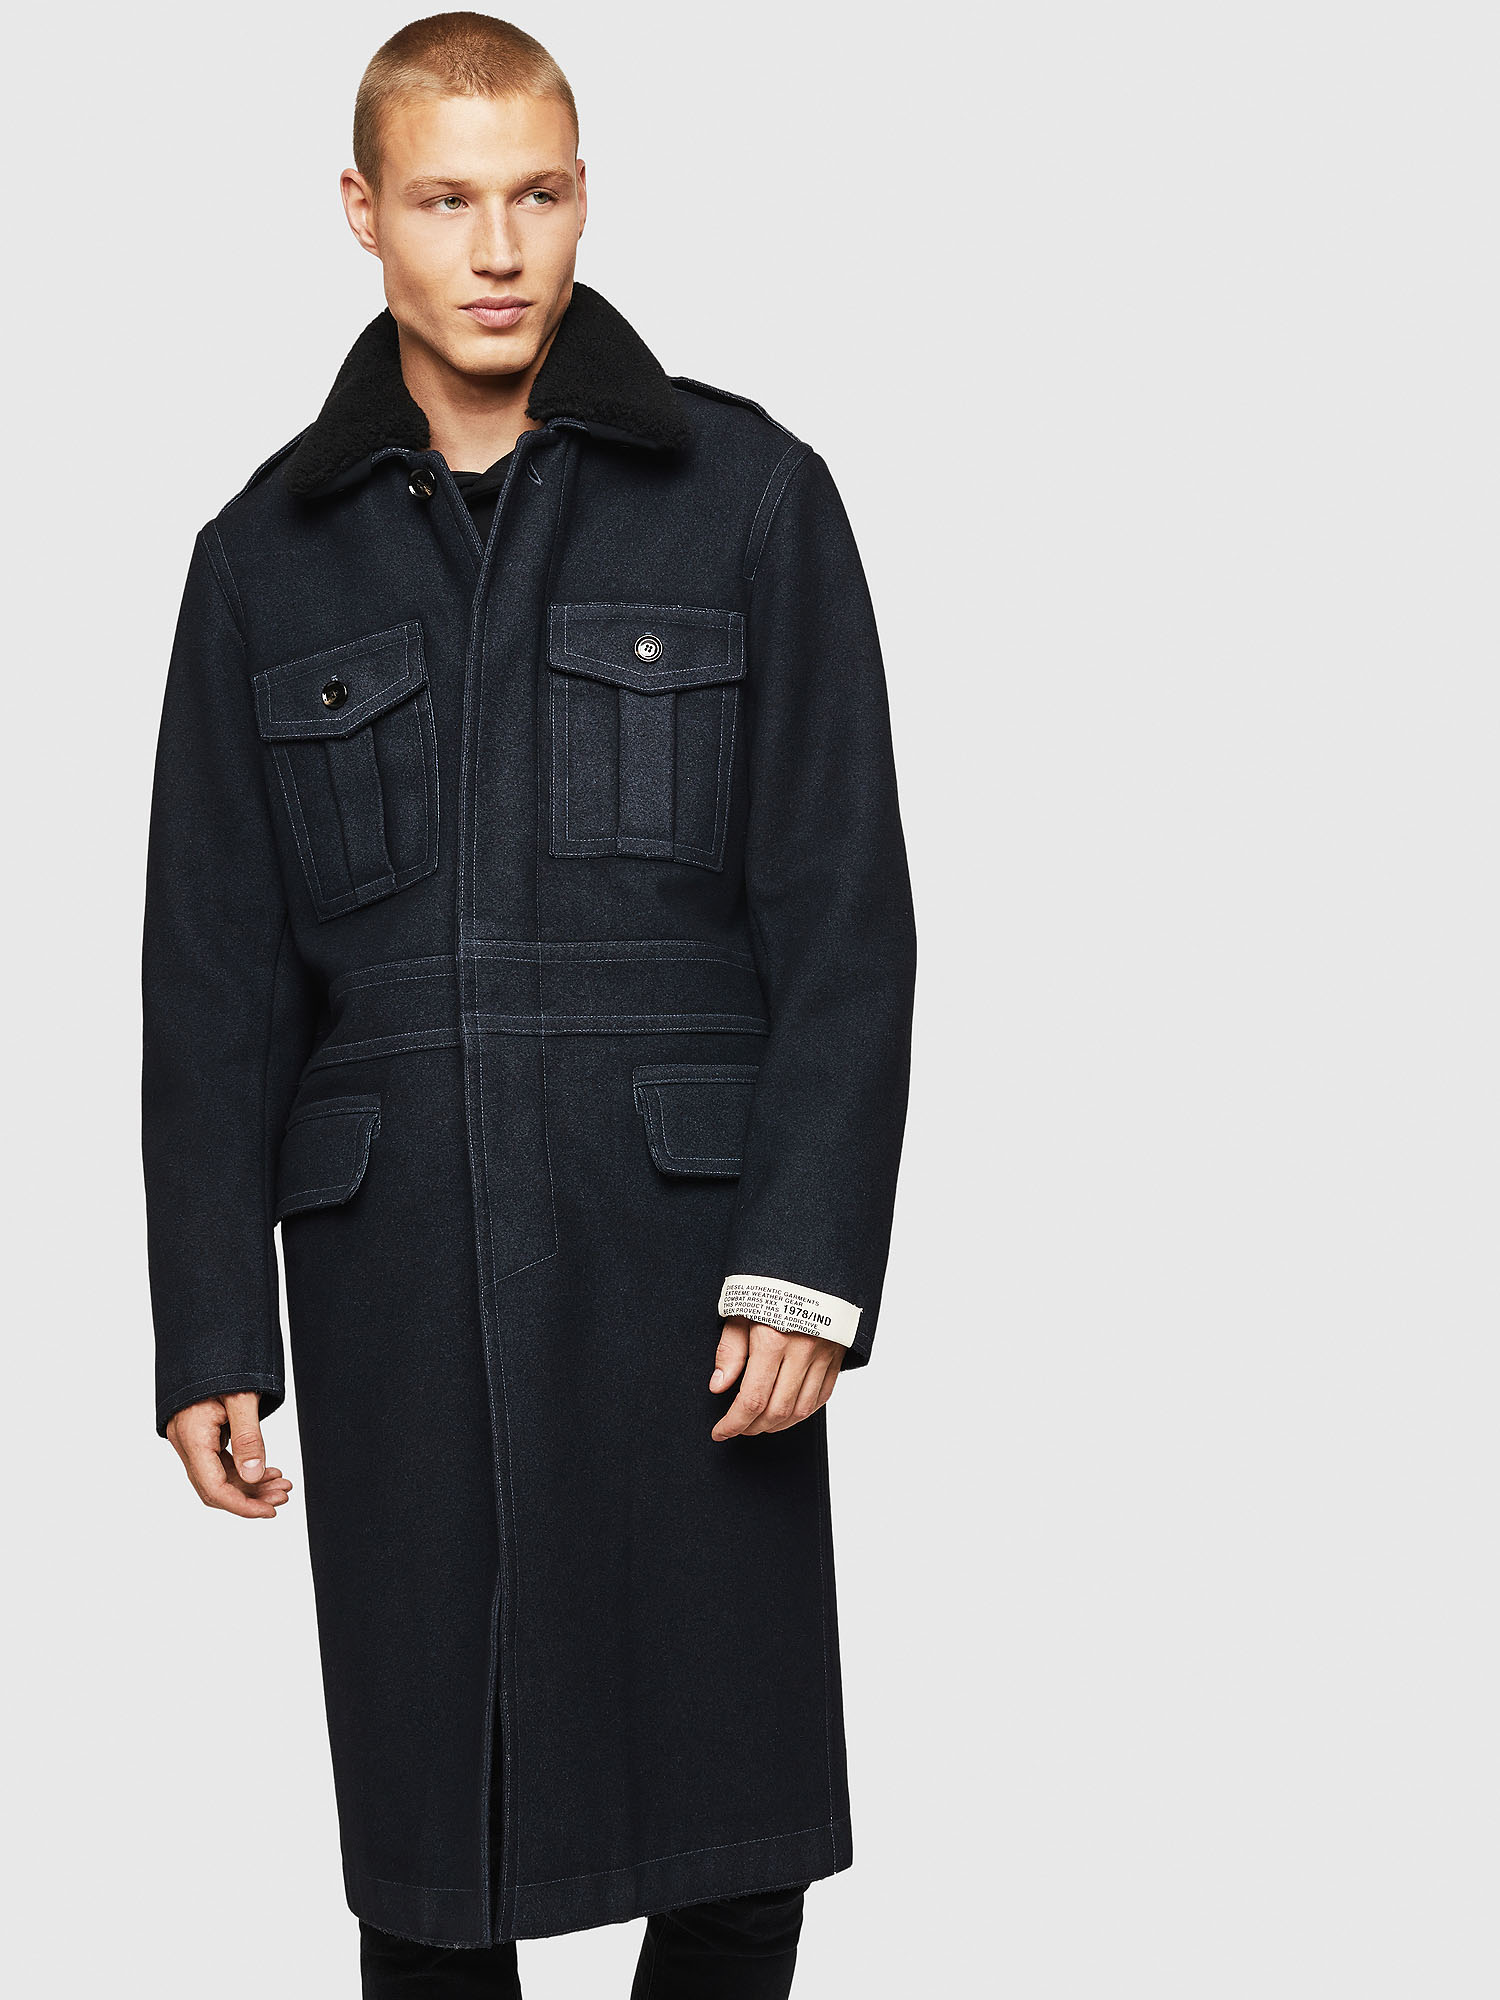 Diesel - W-TIMOTEV, Black - Winter Jackets - Image 1